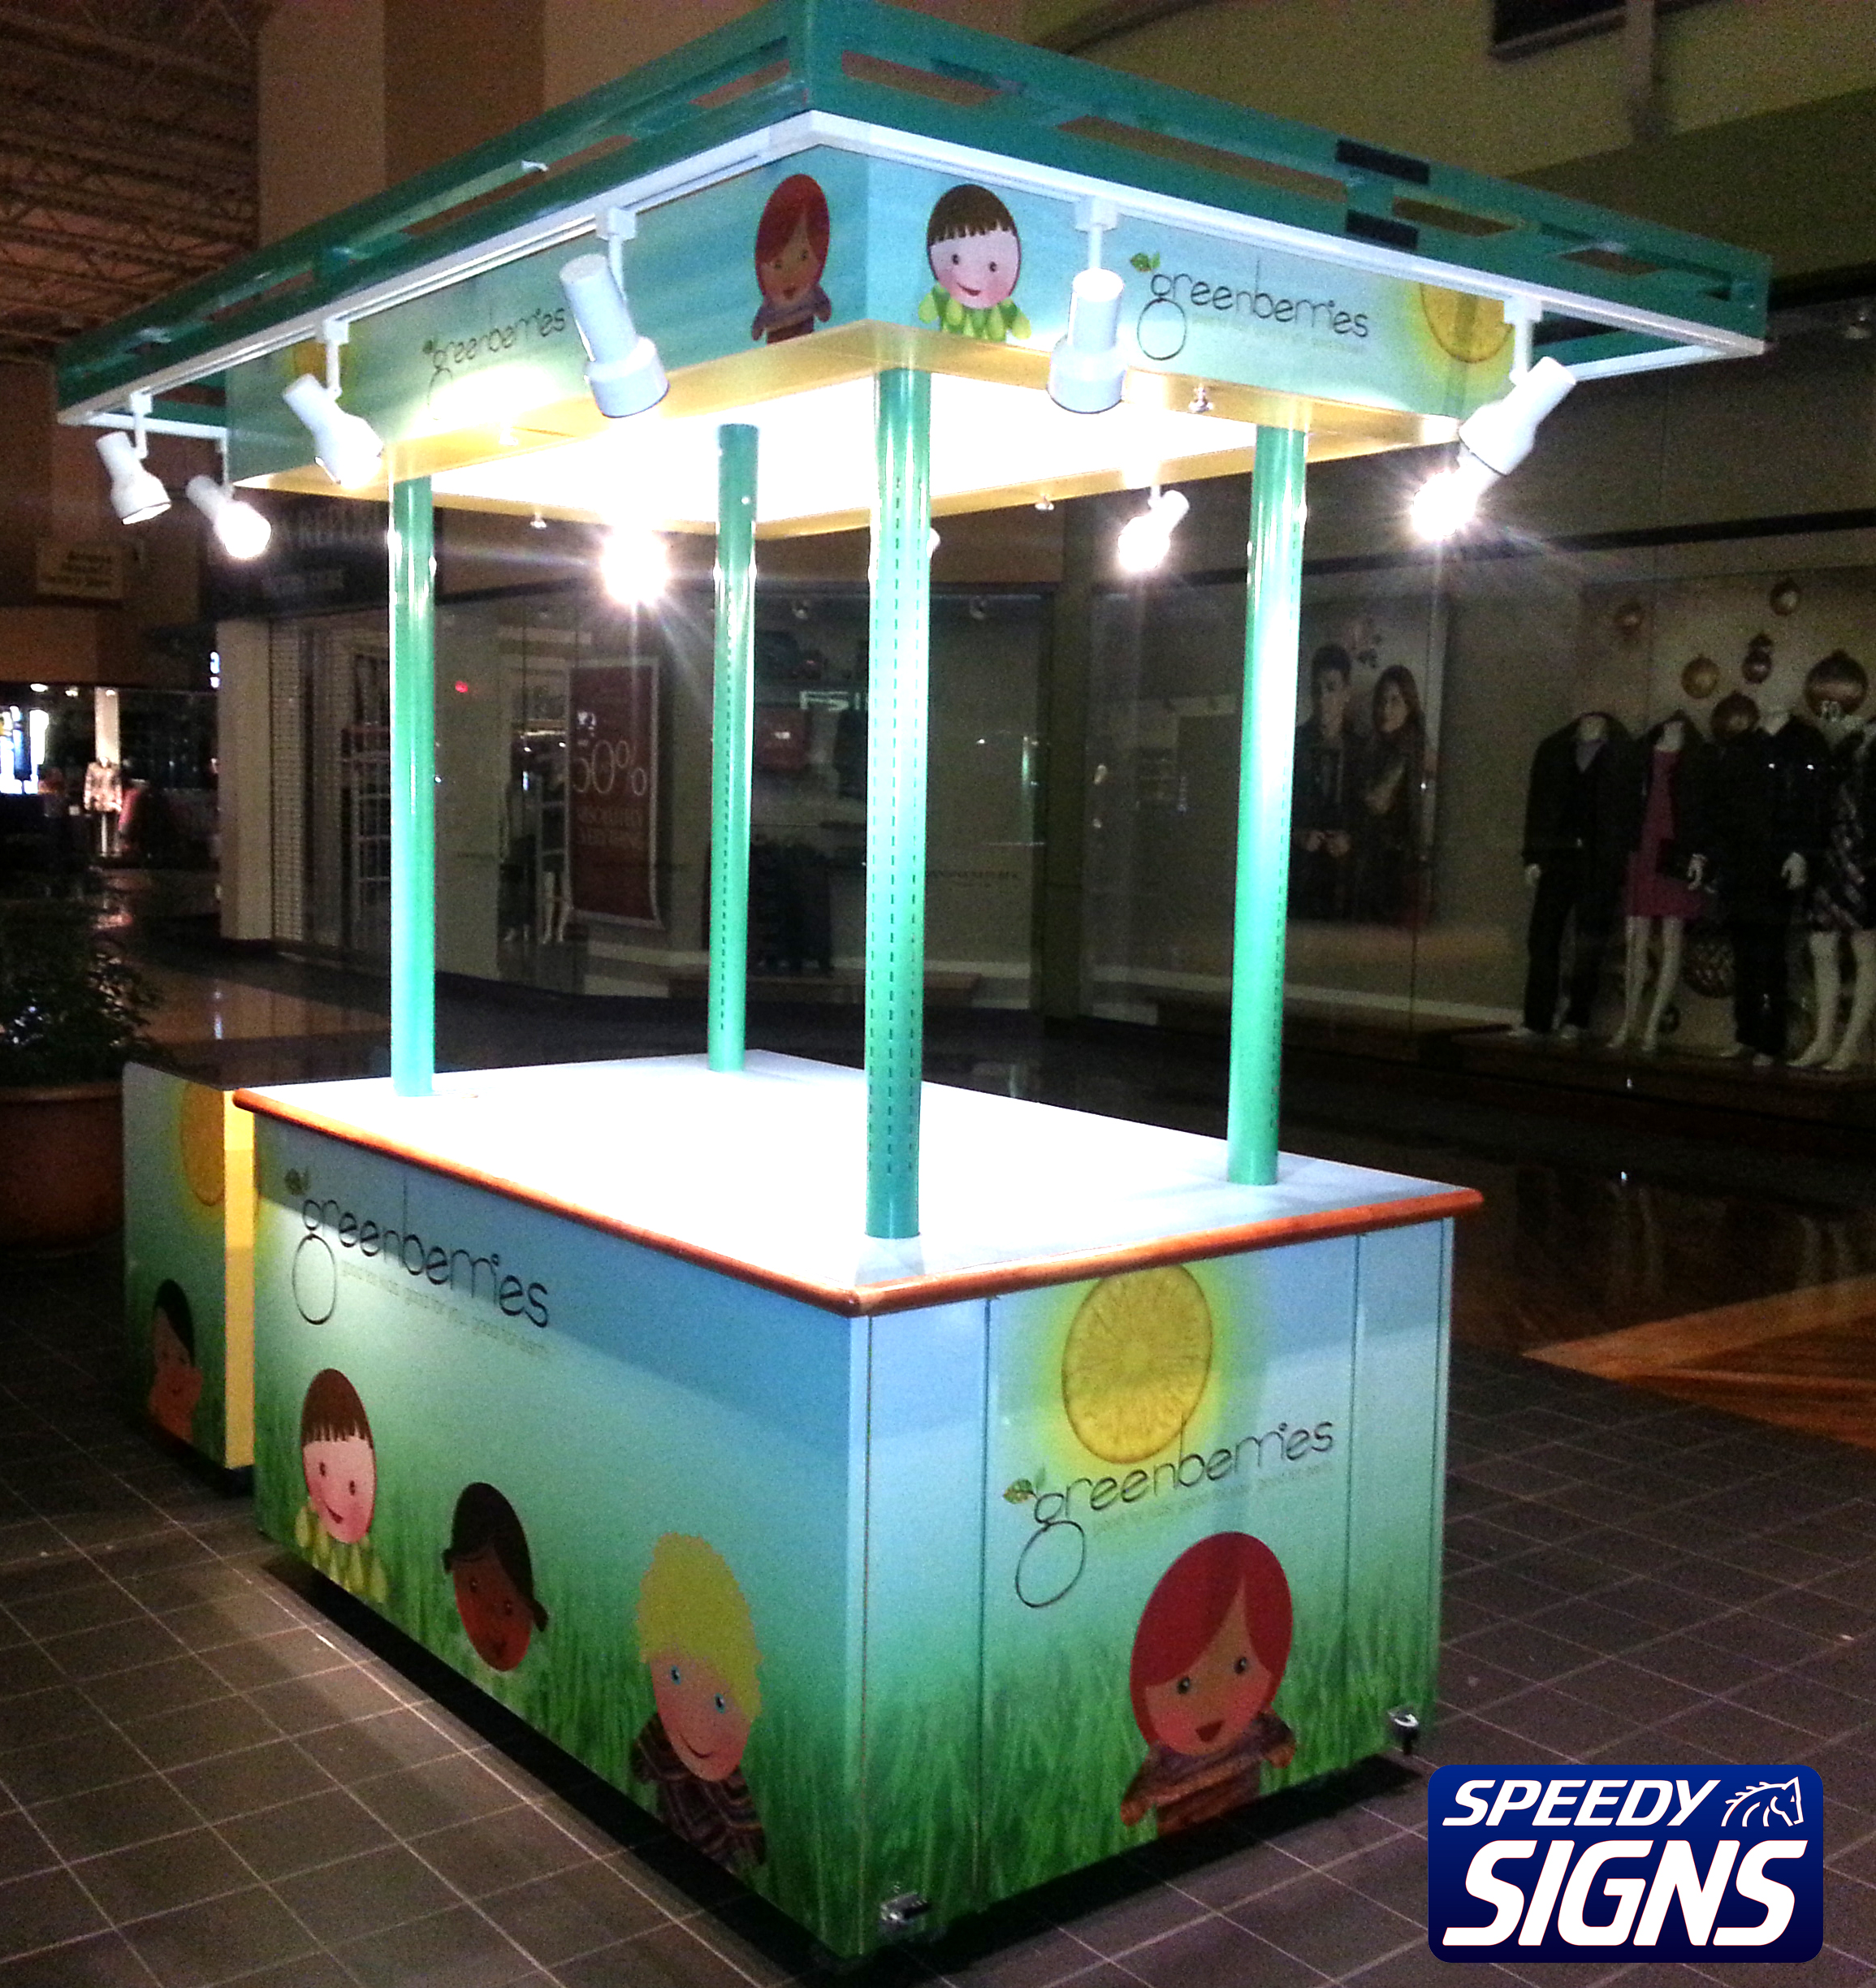 greenberries-kiosk-wrap2.jpg